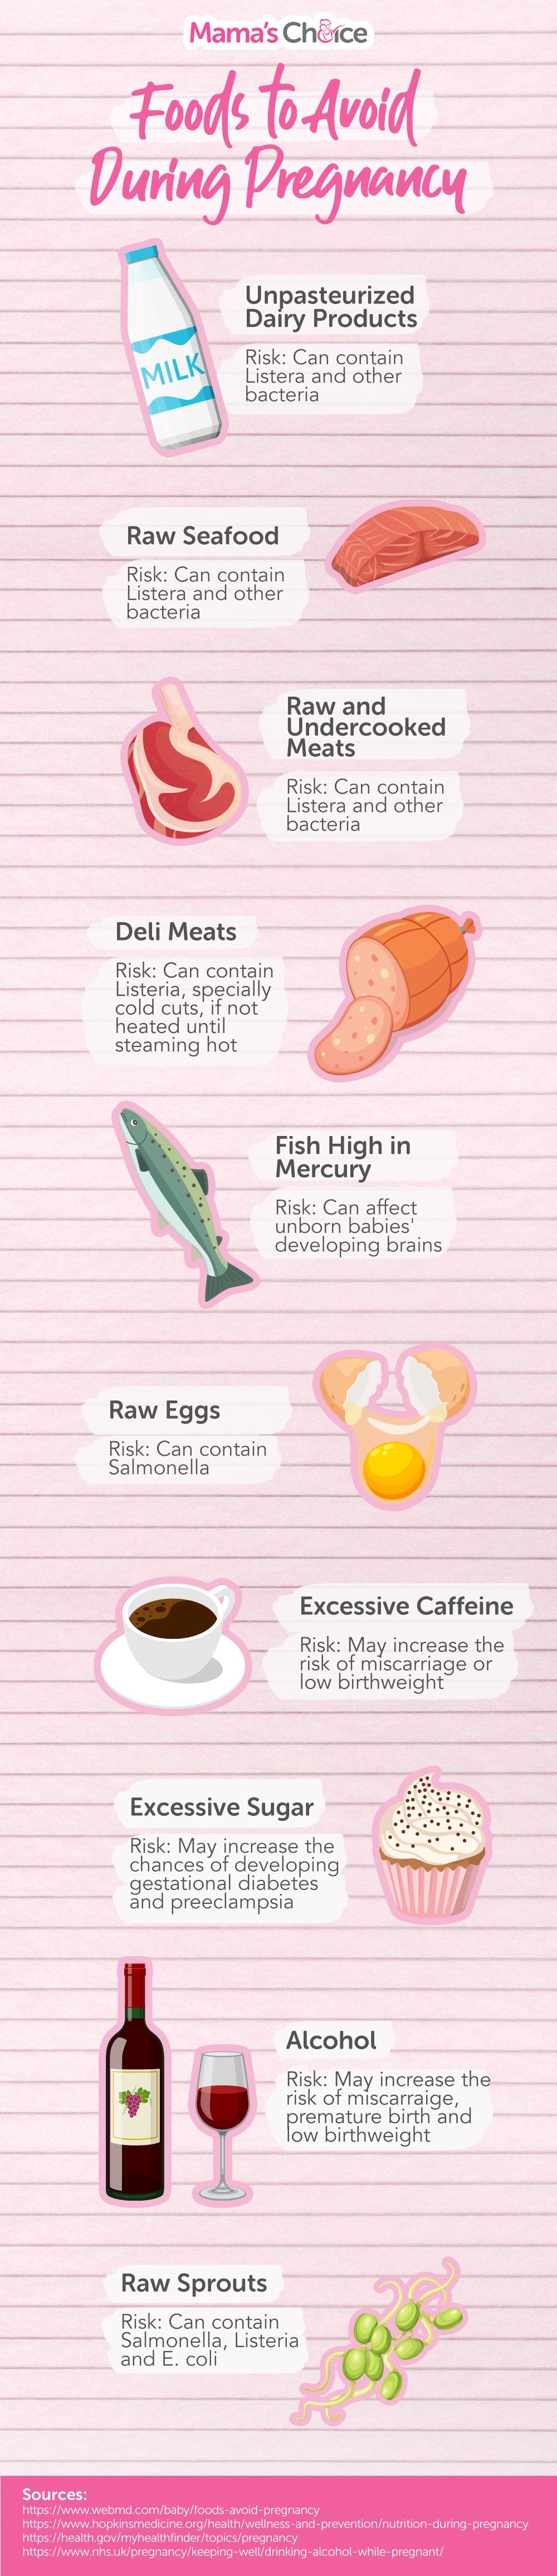 10 Foods To Avoid During Pregnancy